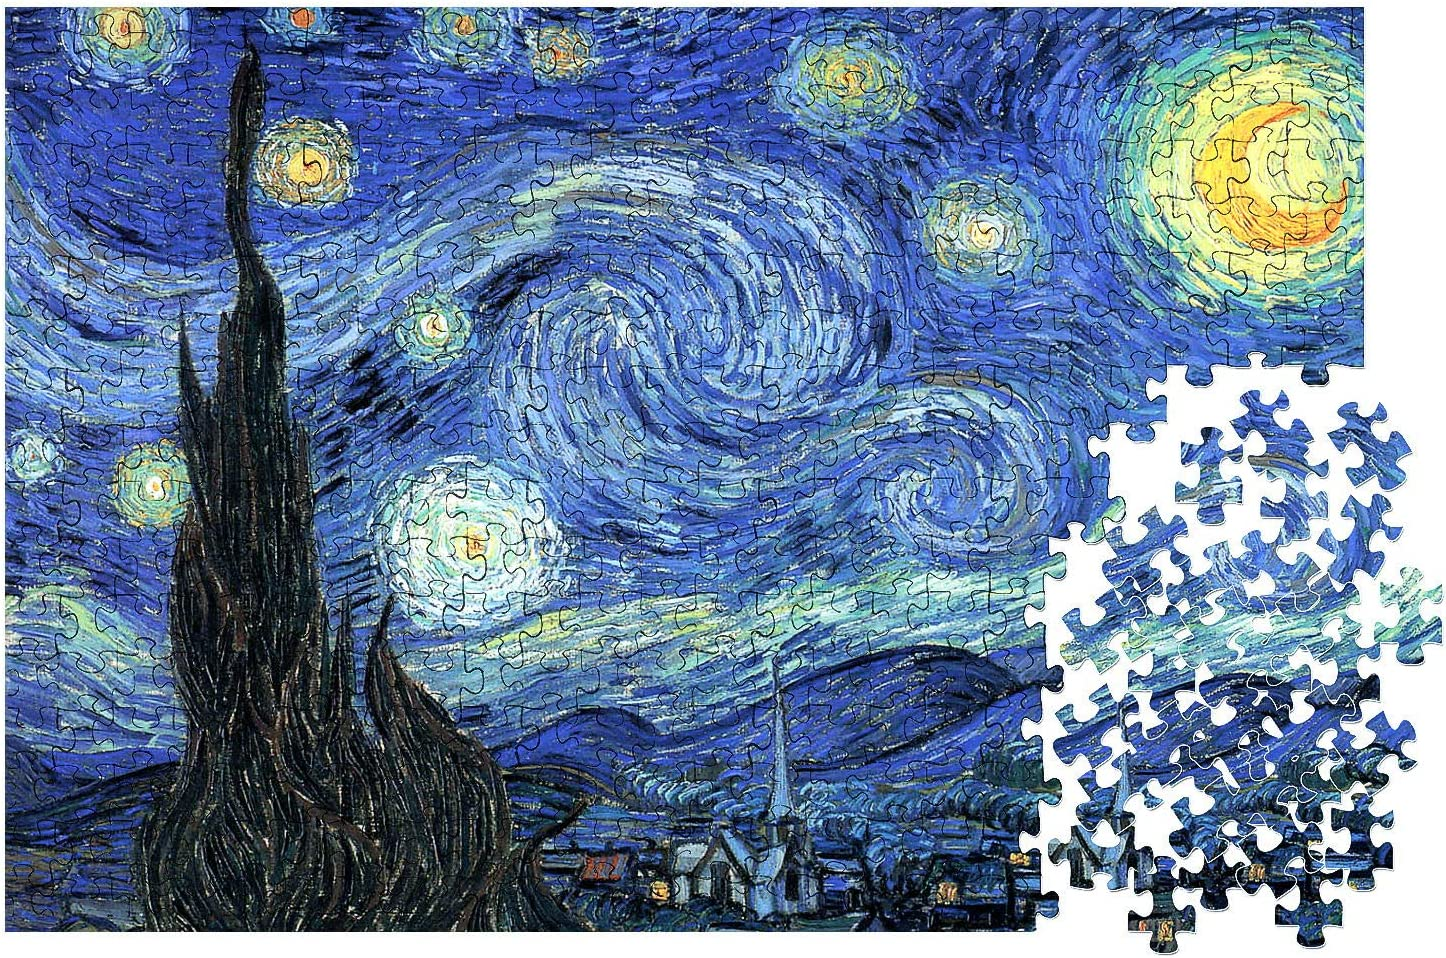 Van Gogh The Starry Night Seloom 2000 Pieces Jigsaw Puzzle for Adults with Family Floor Puzzle Kids Intellectual Game Learning Education Decompression Toys